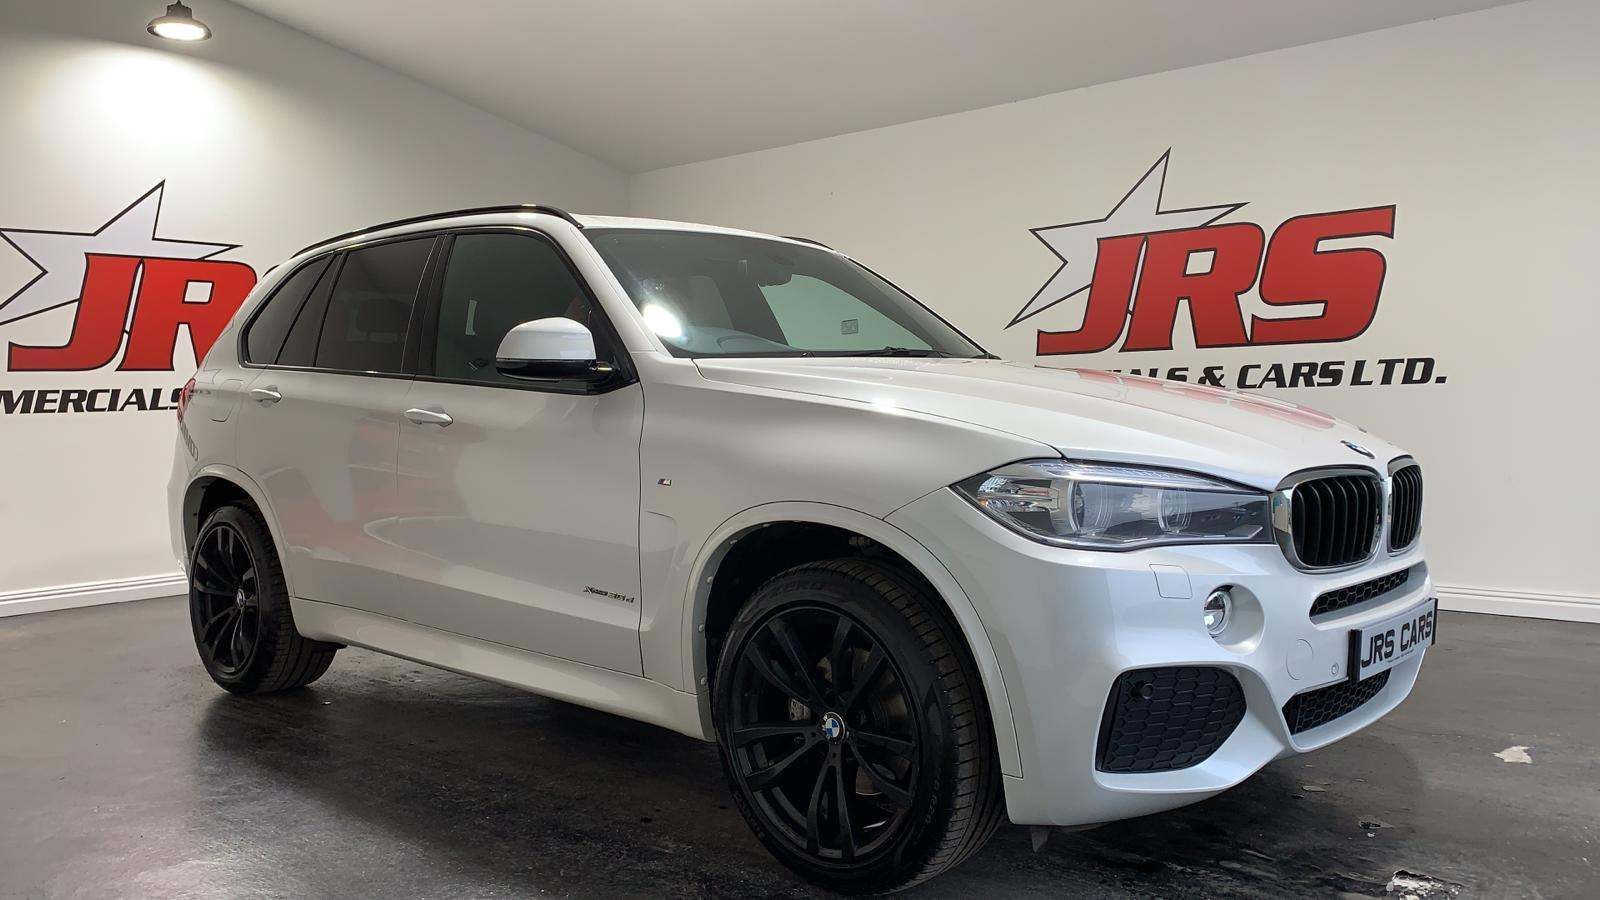 2013 BMW X5 3.0 30d M Sport Auto xDrive (s/s) Diesel Automatic Rev Cam – Tow Bar – 7 Seats – J R S Commercials And Cars Dungannon full